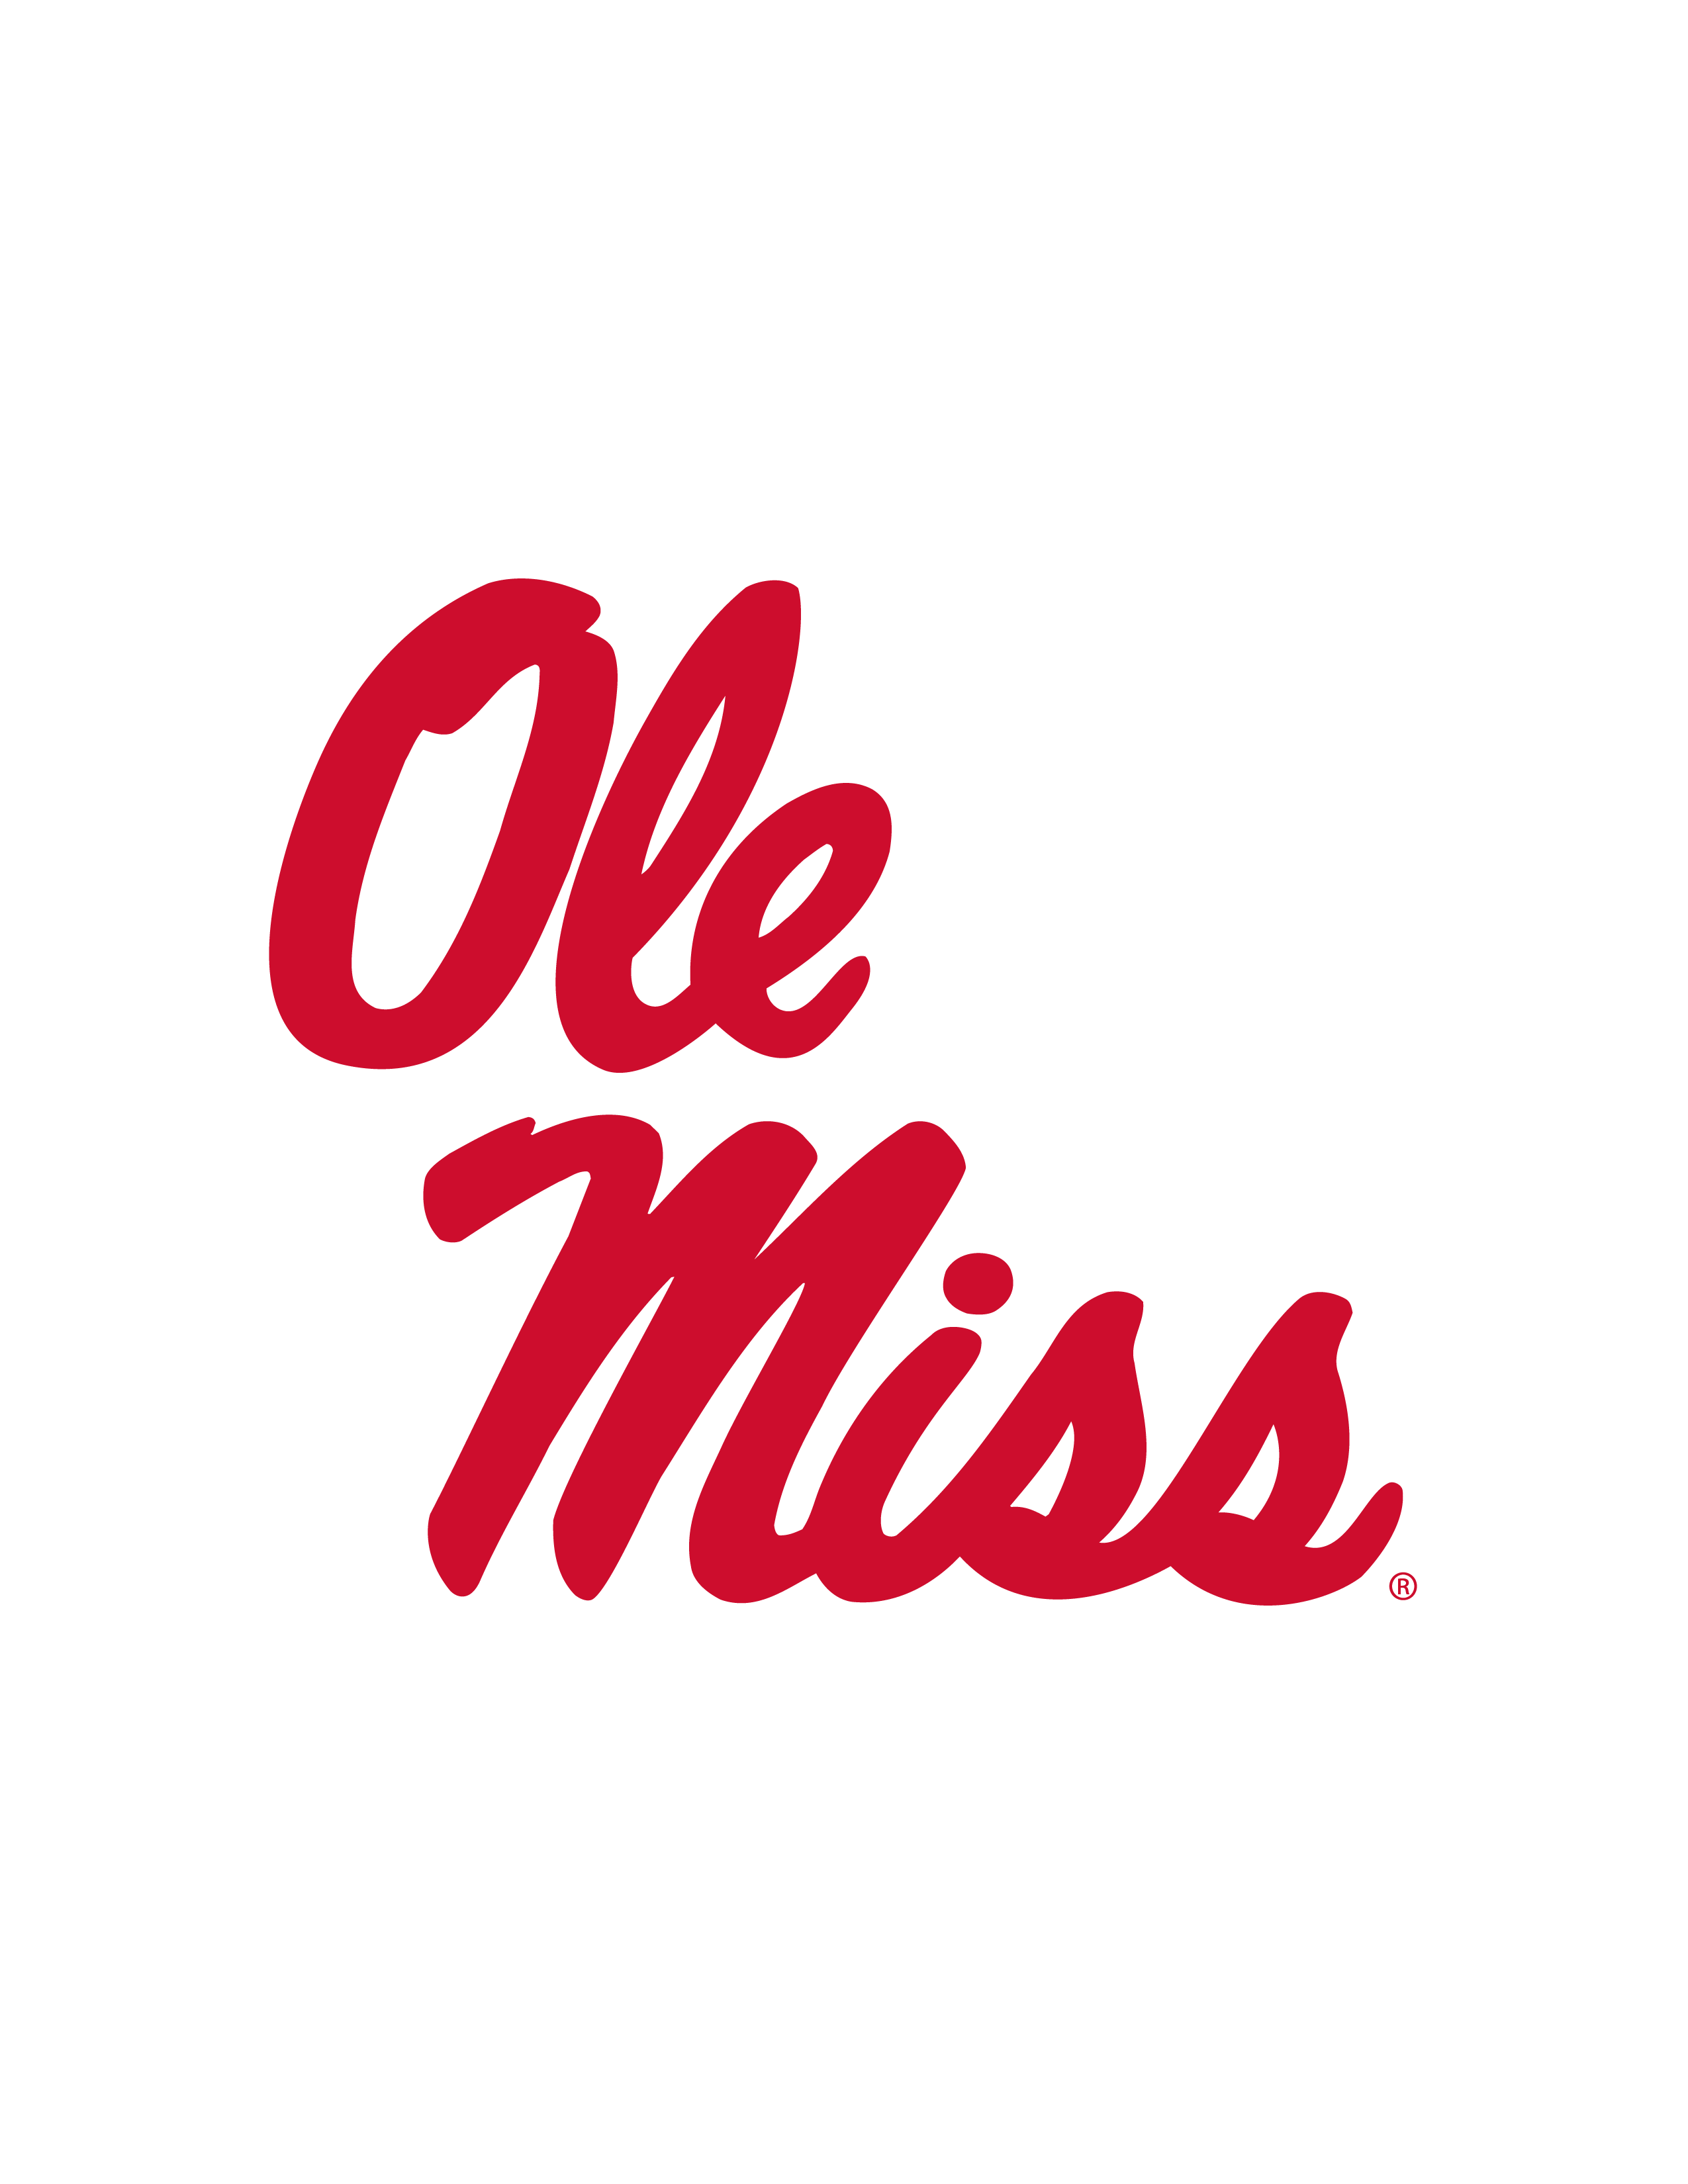 Ole miss football clipart picture transparent library University of Mississippi Ole Miss Rebels football Mississippi State ... picture transparent library